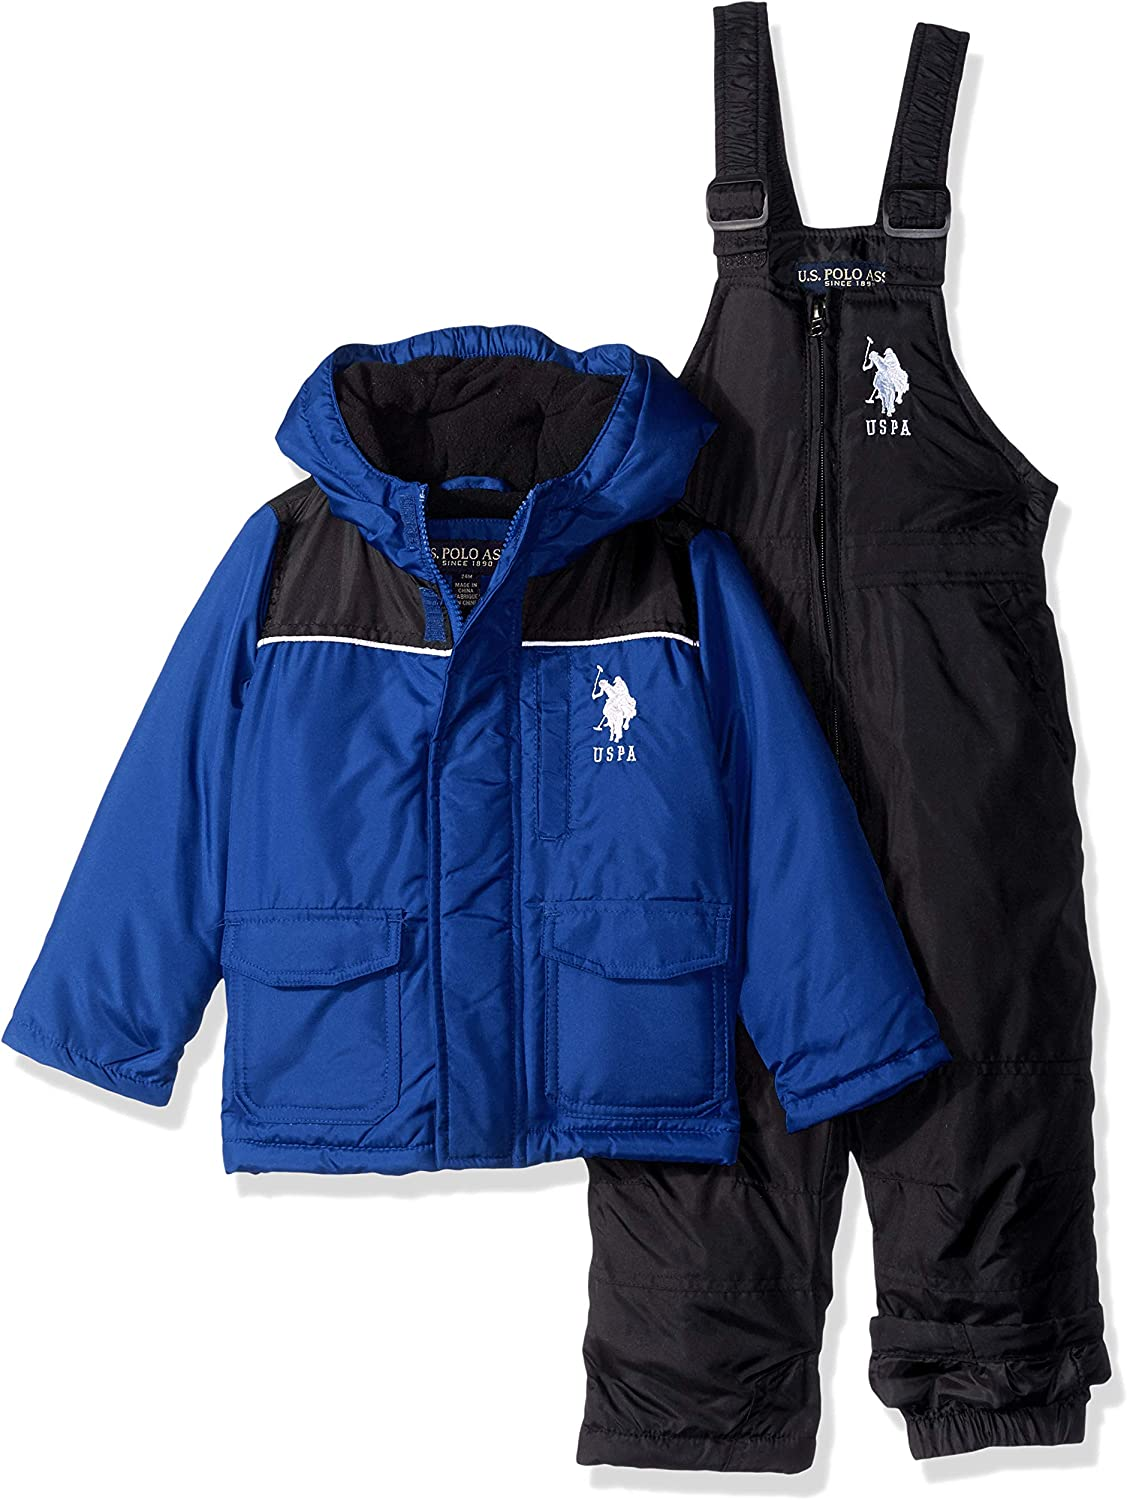 Baby Boys 2 Piece Snowsuit with Ski Bib Pant Set Polo Assn U.S